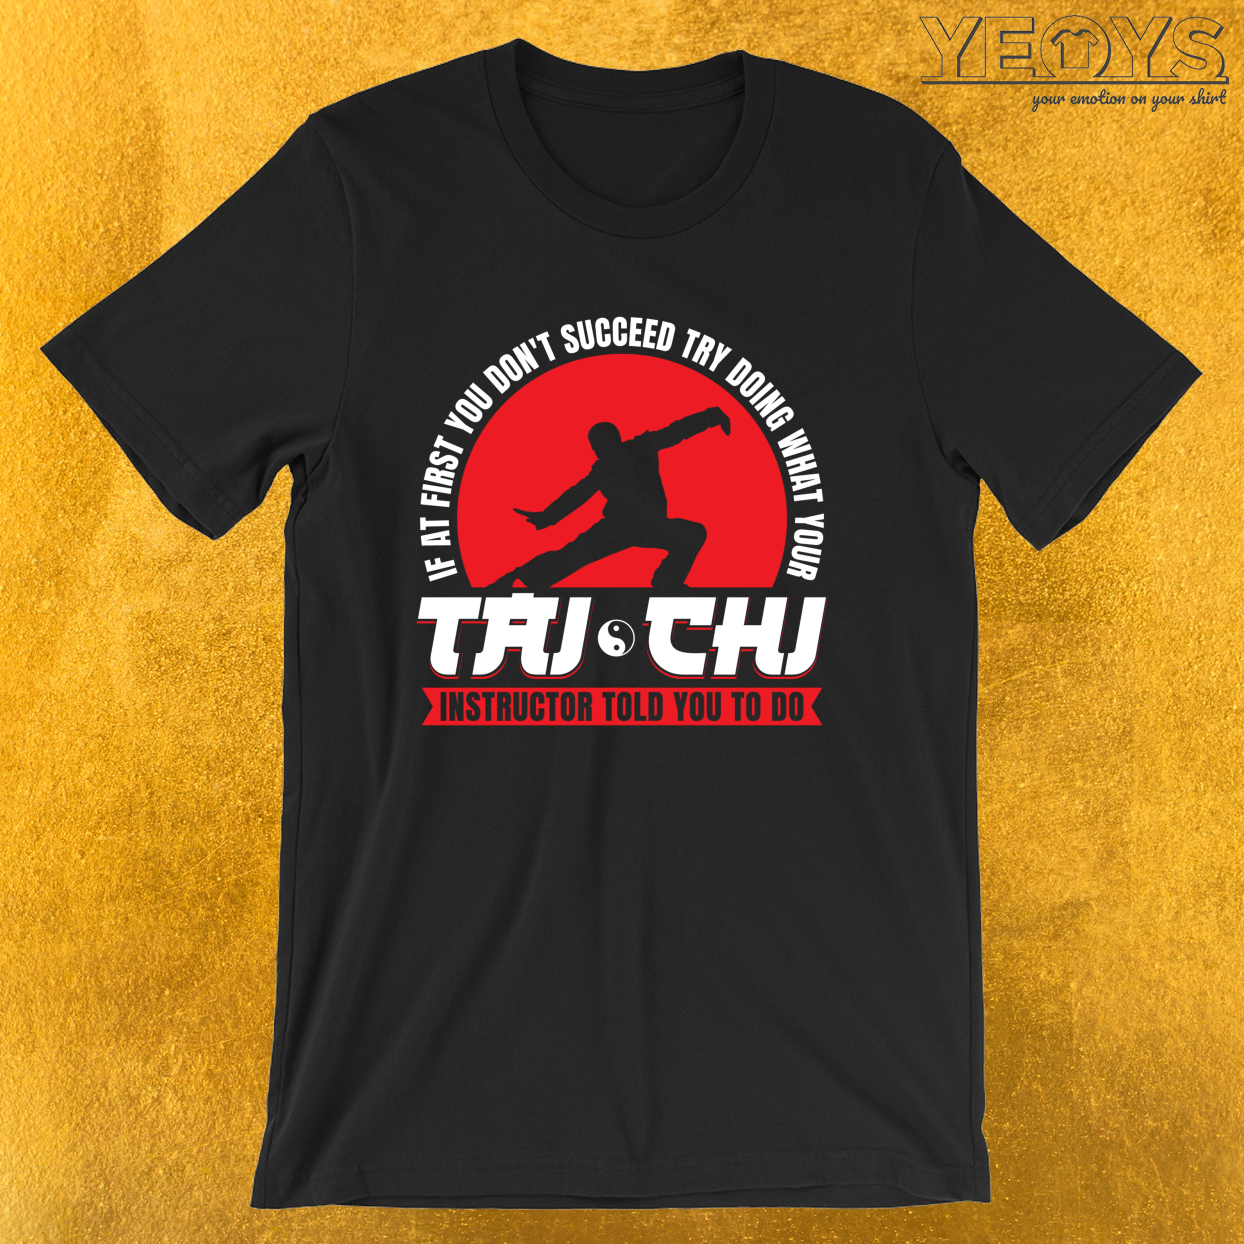 Try What Your Tai Chi Instructor Told You – Tai Chi Chuan Tee